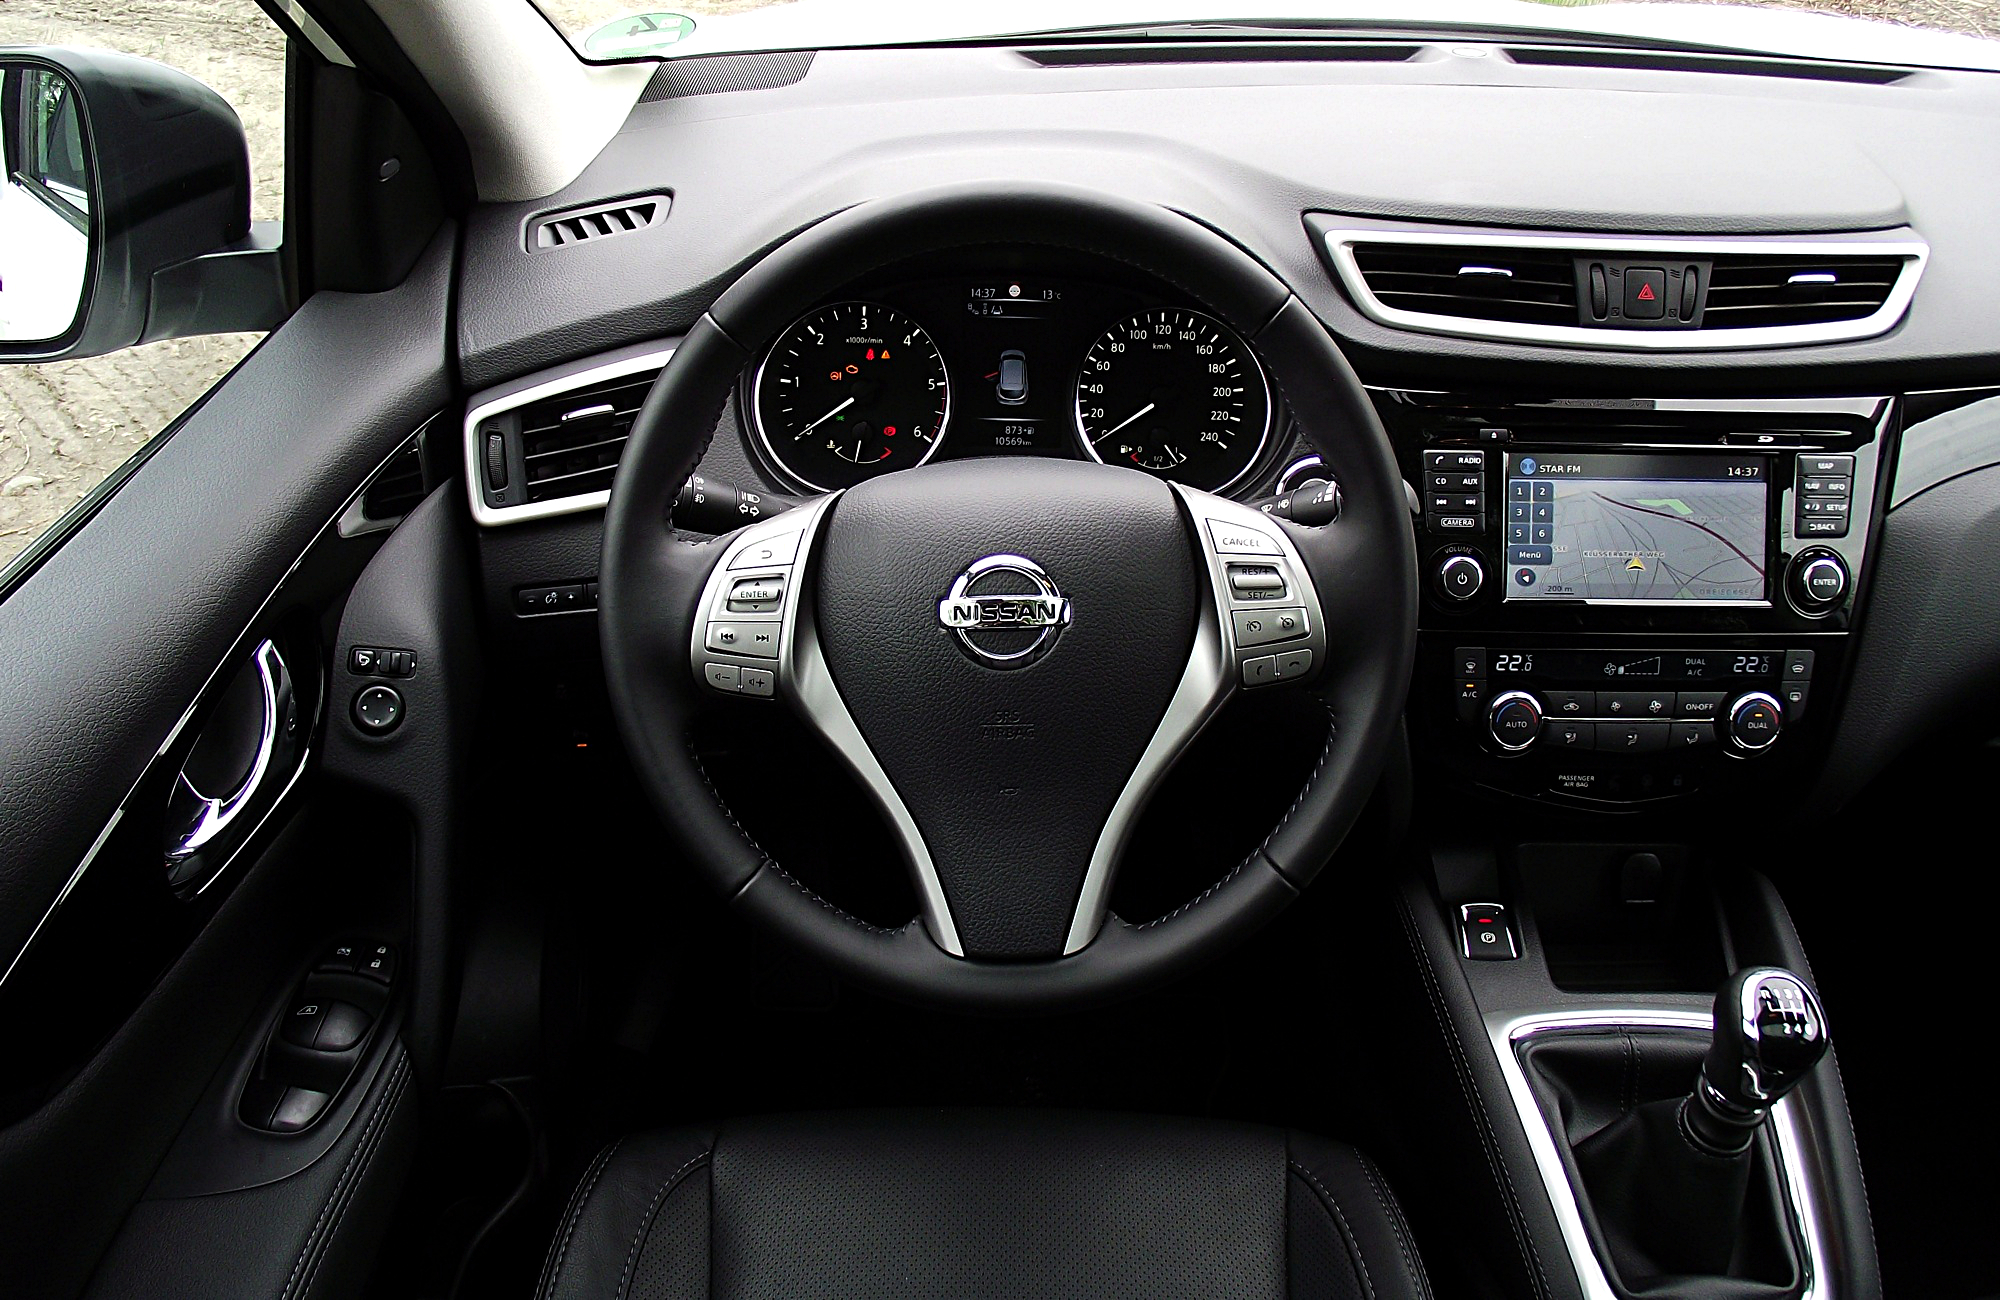 datei nissan qashqai 1 6 dci all mode 4x4i tekna interieur cockpit innenraum jpg wikipedia. Black Bedroom Furniture Sets. Home Design Ideas